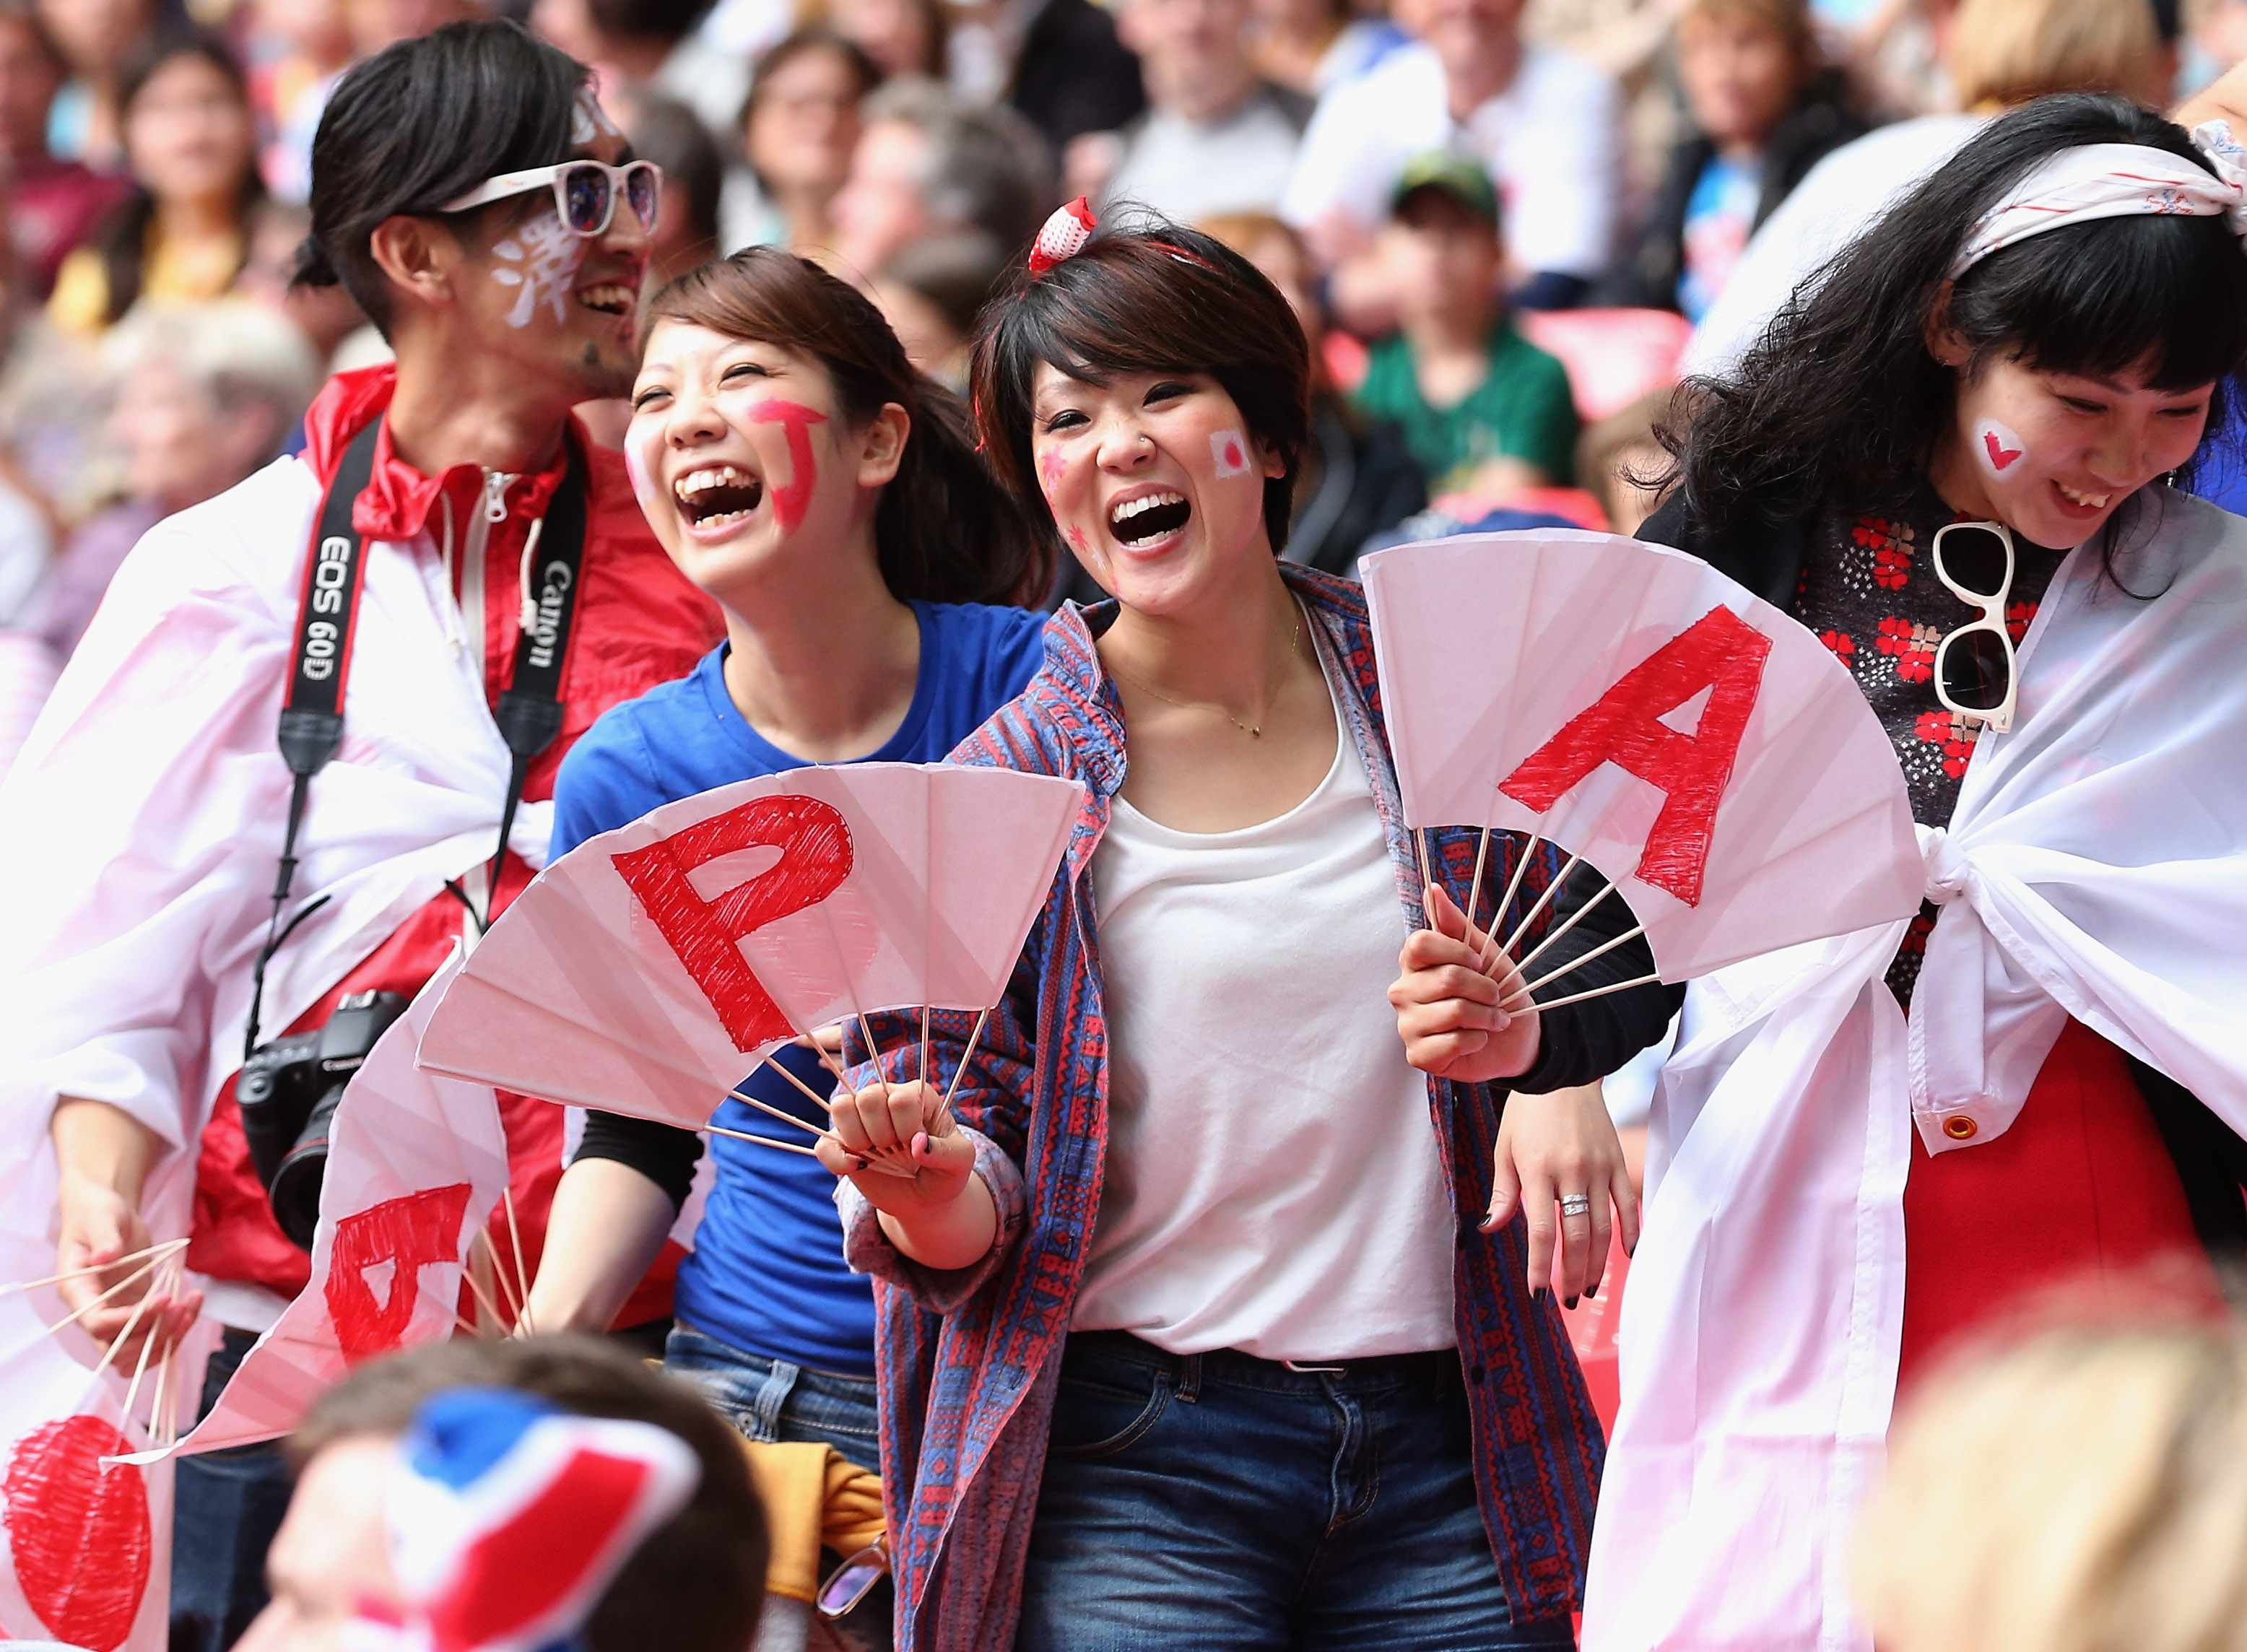 LONDON, ENGLAND - AUGUST 06:  Japan fans show their support during the Women's Football Semi Final match between France and Japan on Day 10 of the London 2012 Olympic Games at Wembley Stadium on August 6, 2012 in London, England.  (Photo by Julian Finney/Getty Images)